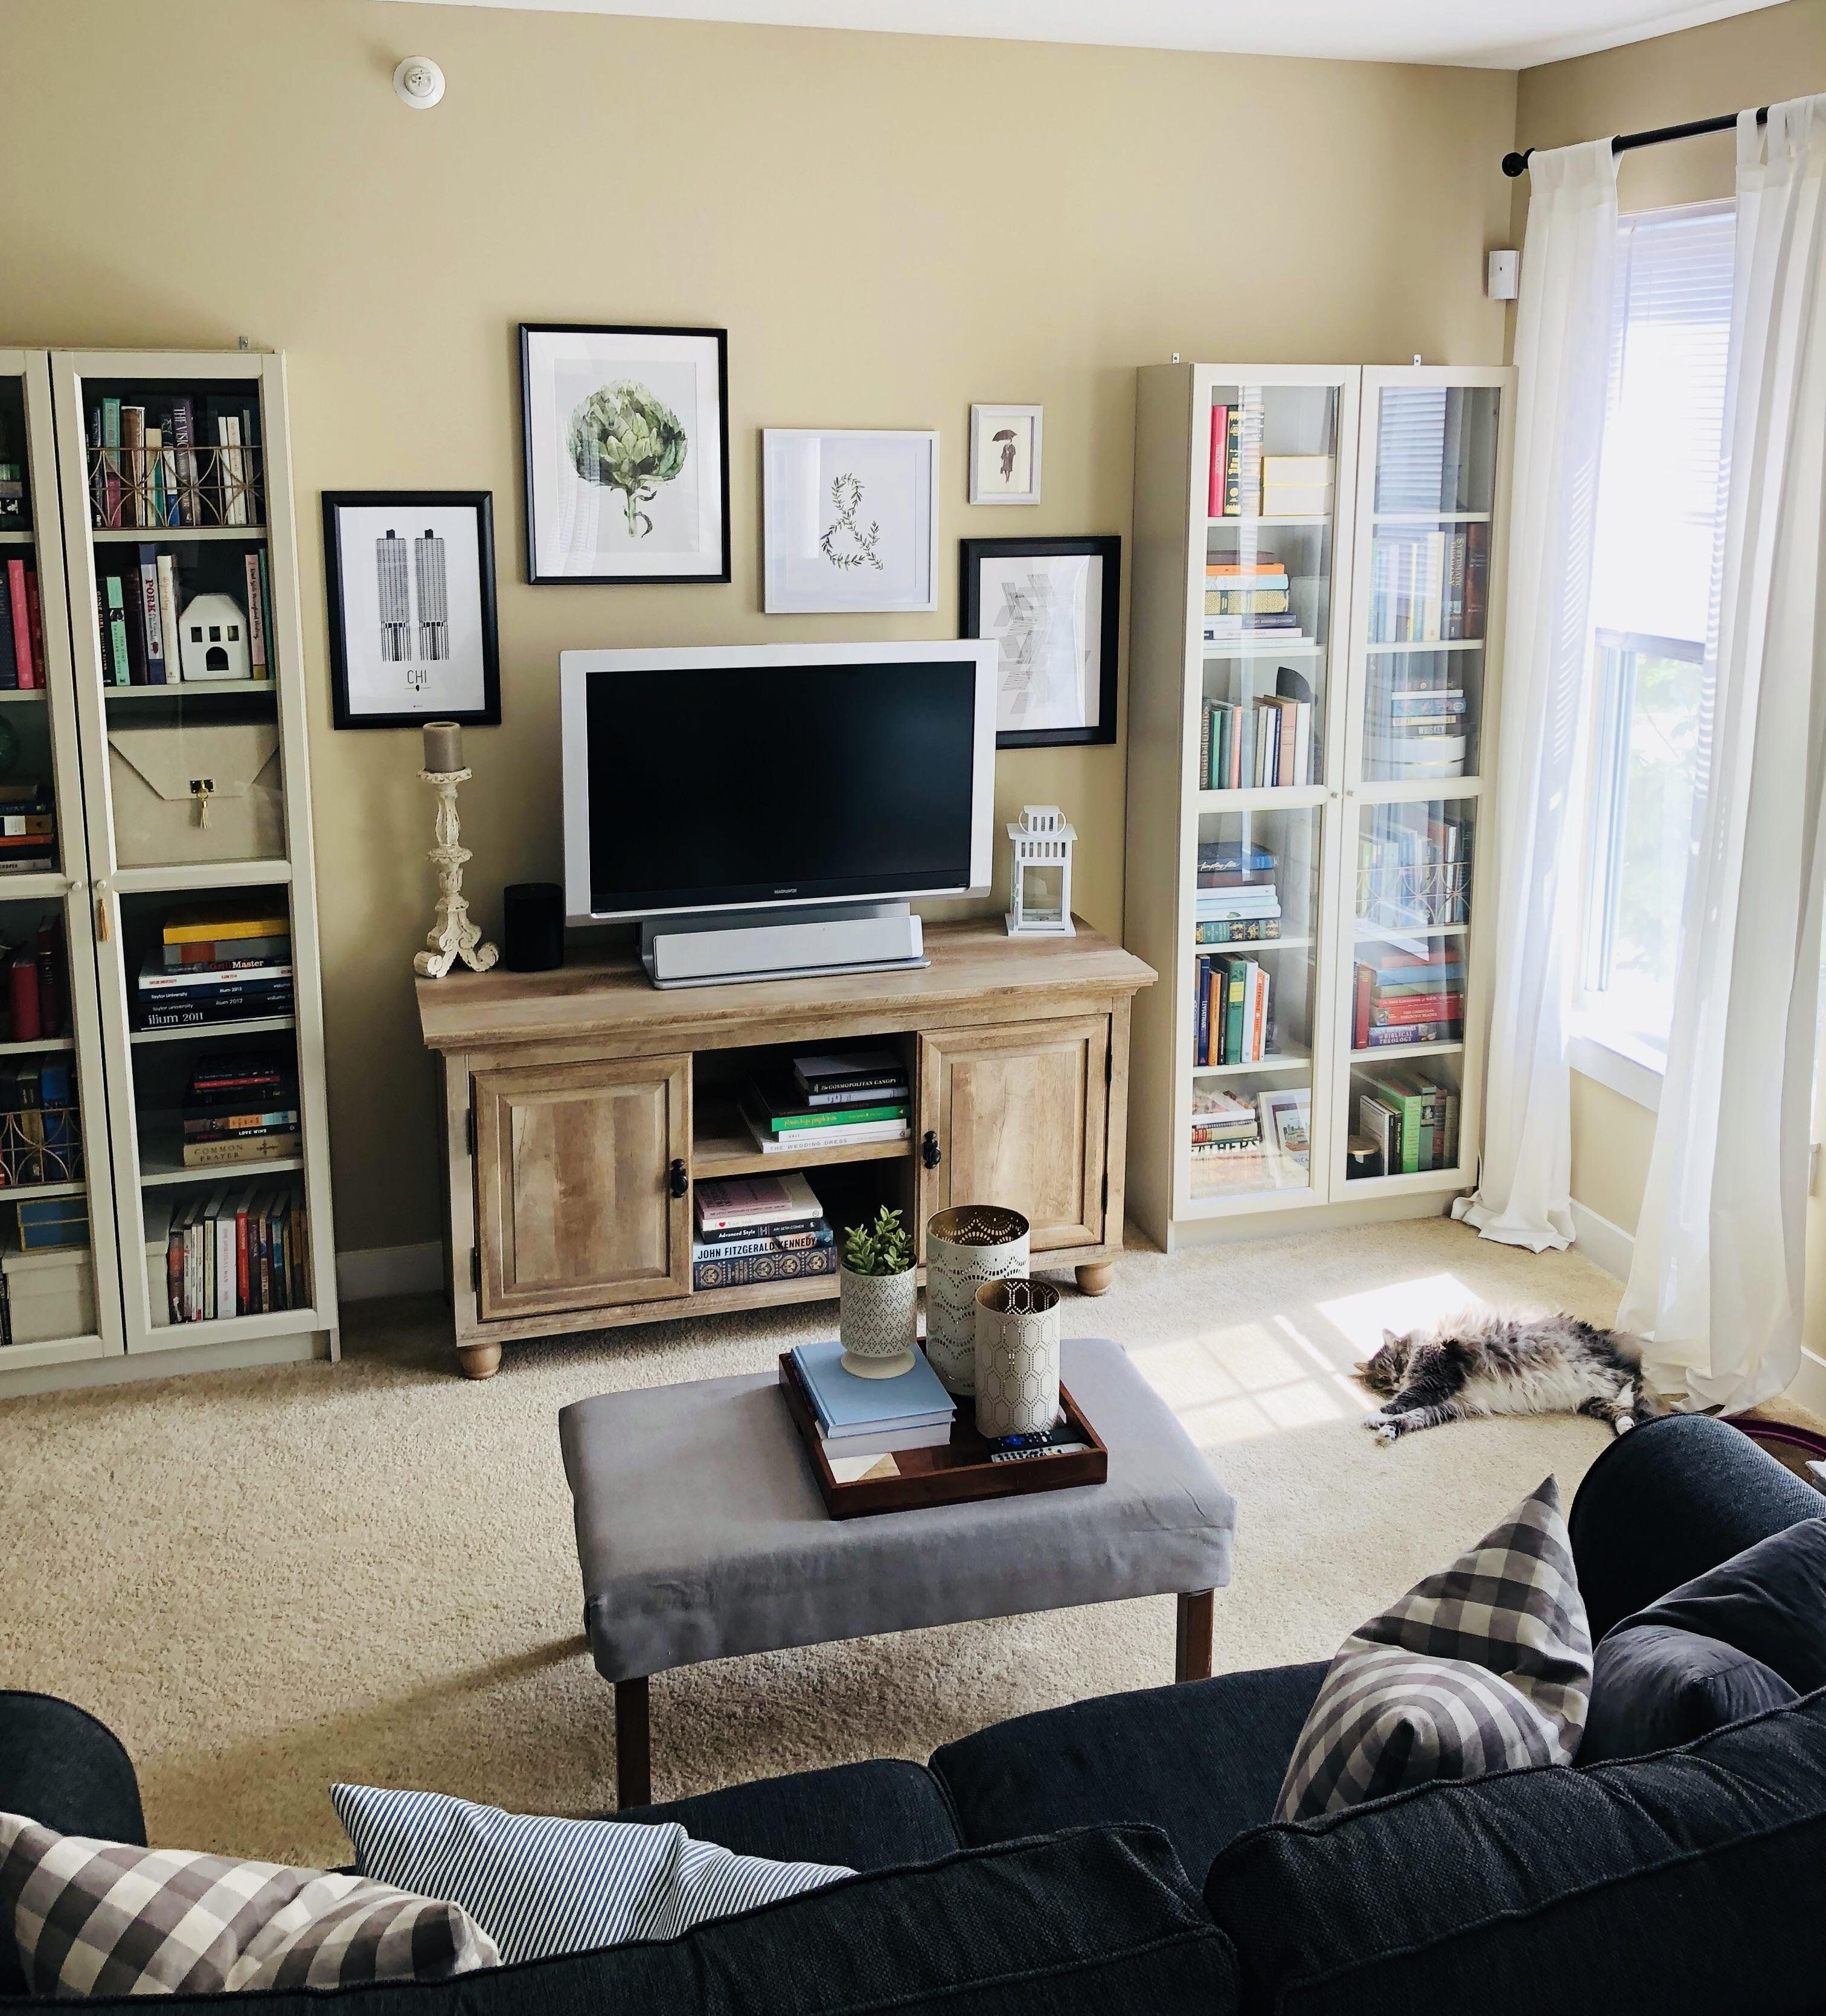 we have slowly been transitioning our living room from the